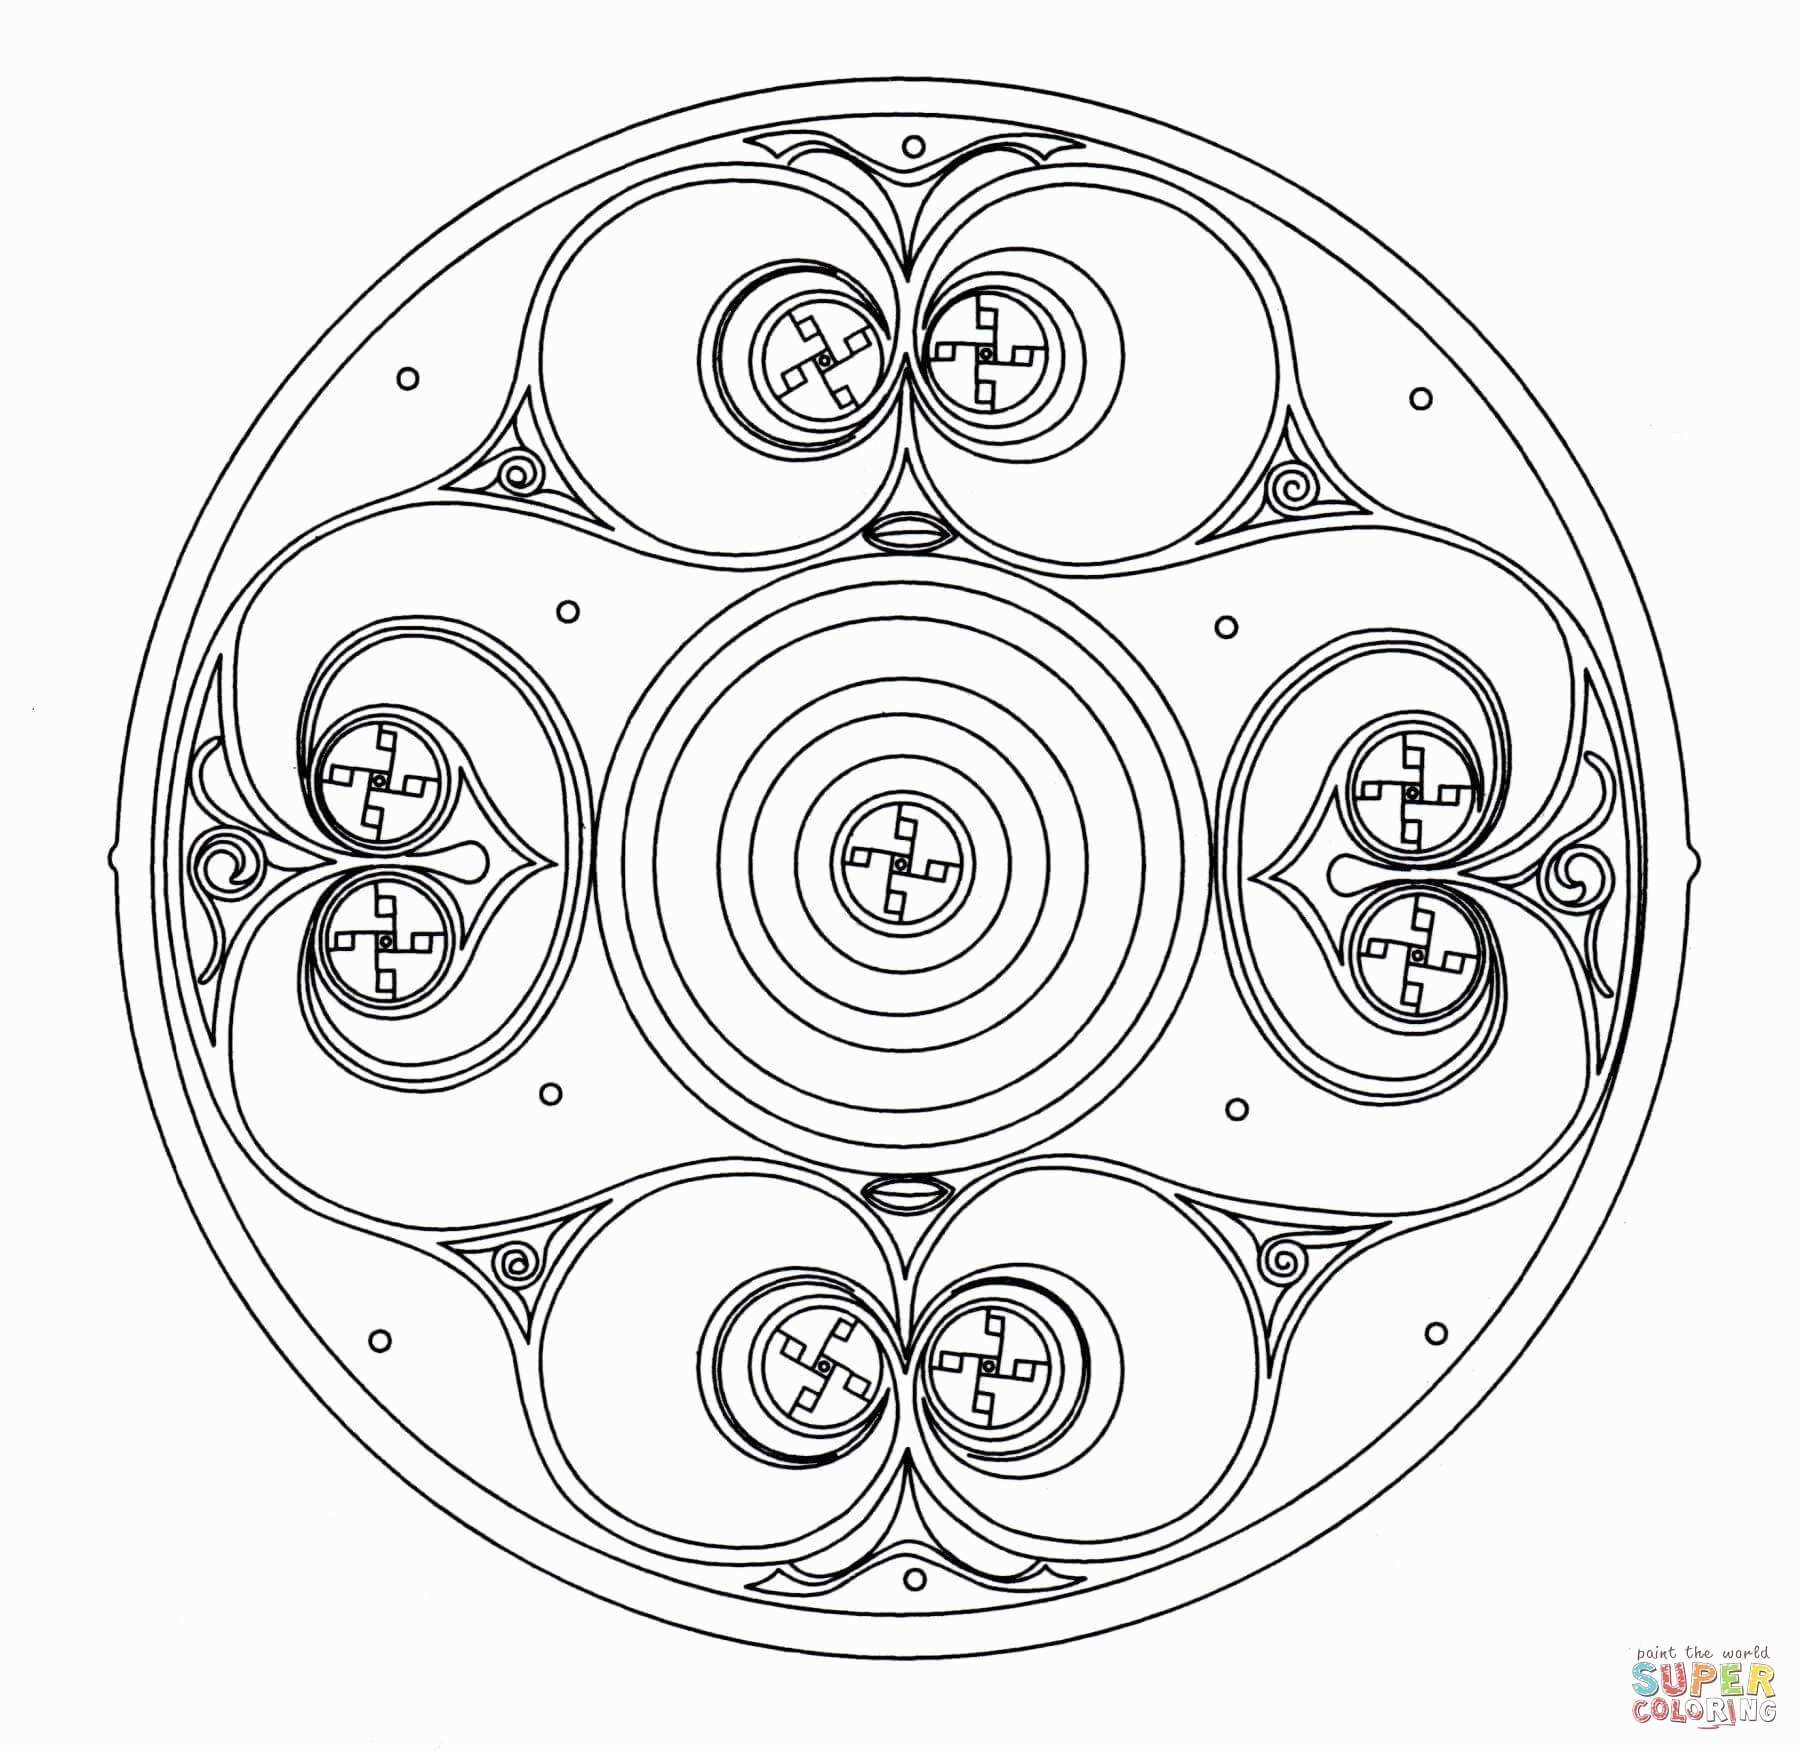 celtic mandalas coloring pages Download-Coloring Books for Grown Ups Celtic Mandala Coloring Pages Free Printable Mandala Coloring Pages Luxury Printable Celtic 9-r